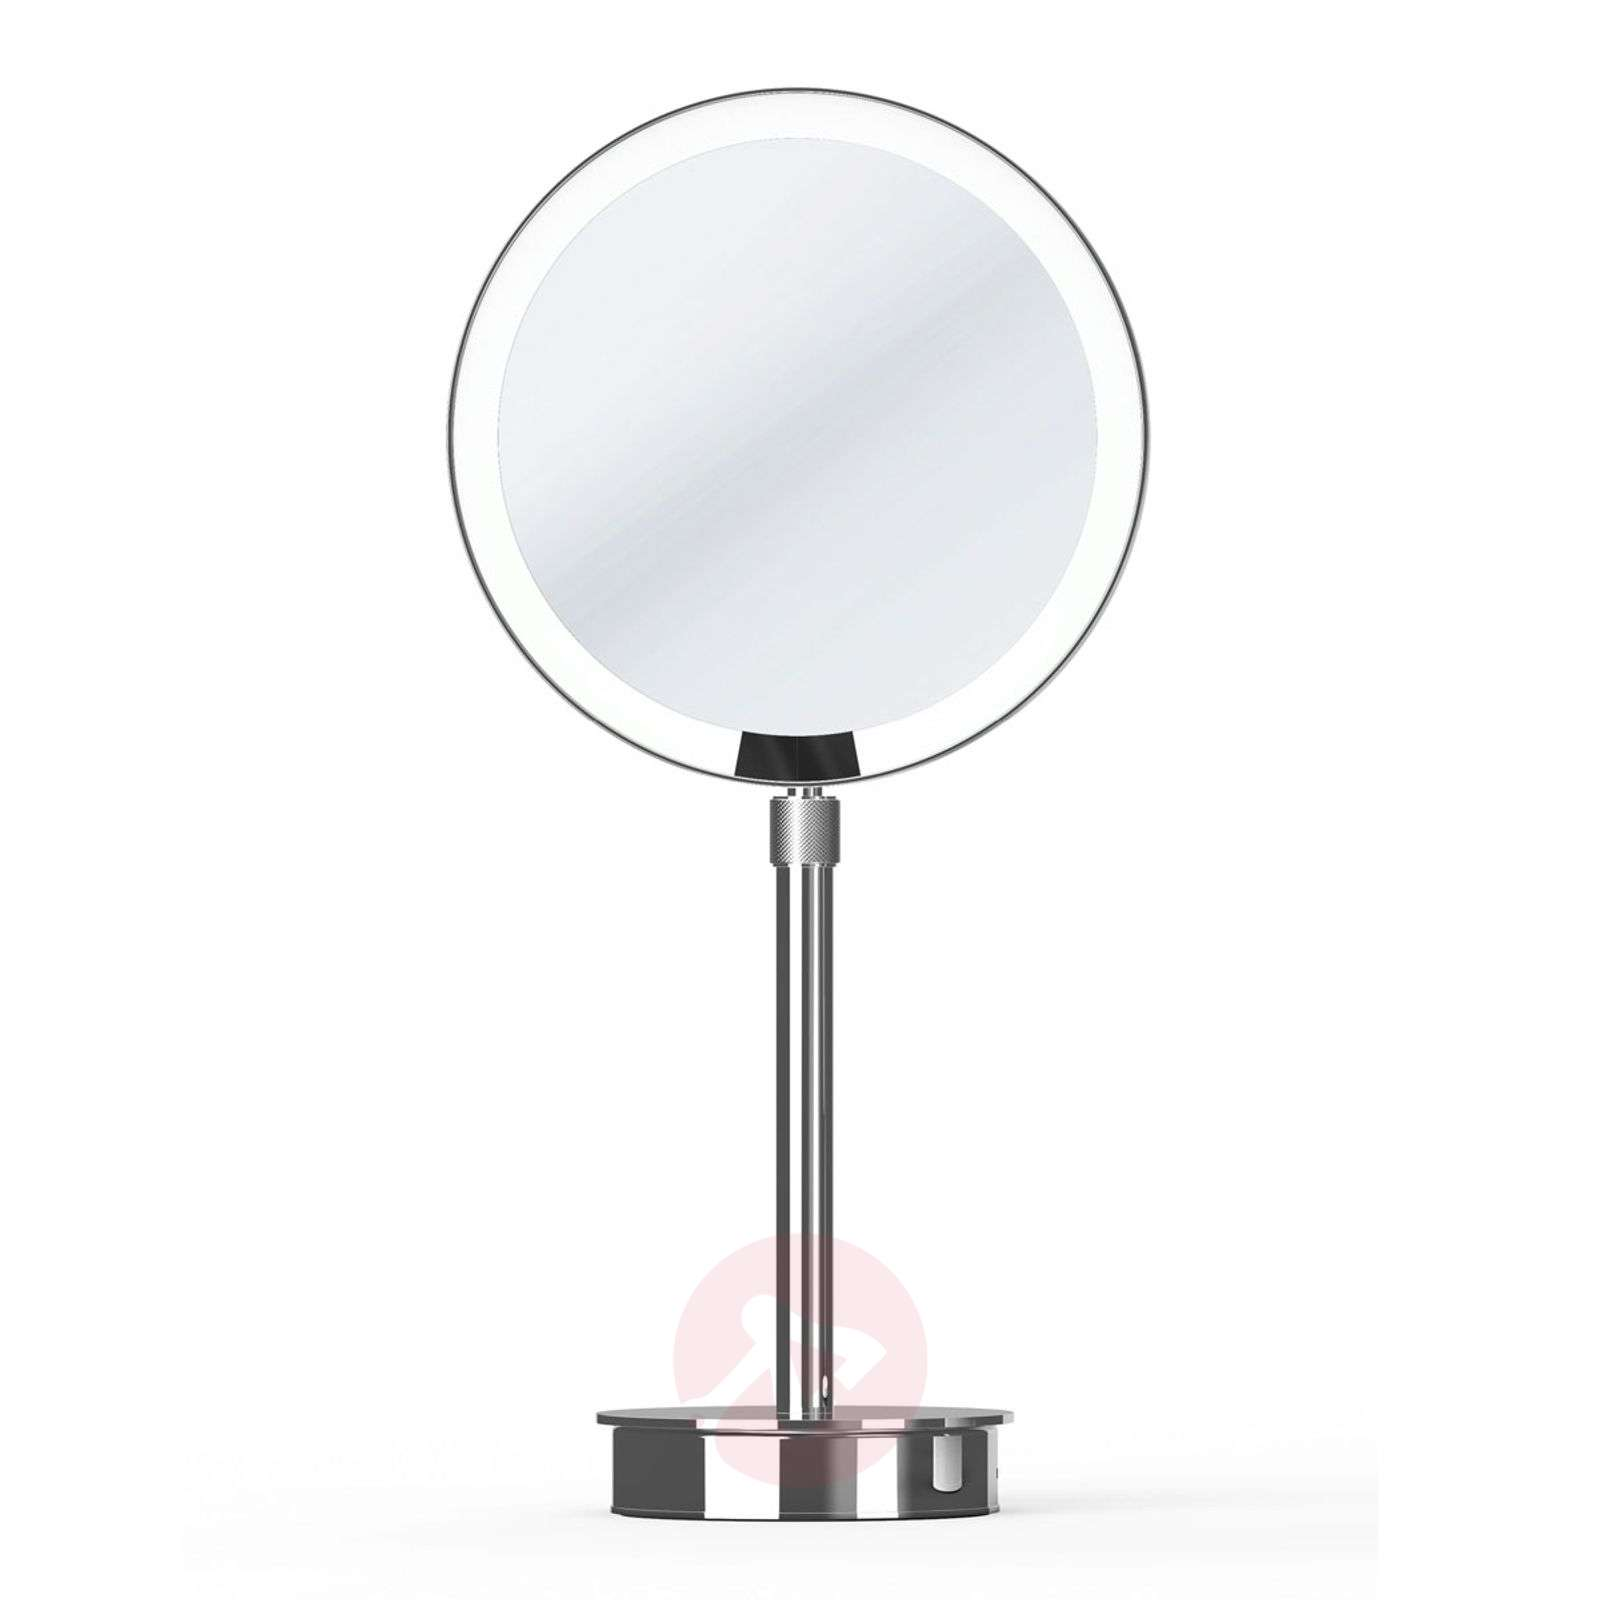 Decor Walther Just Look SR miroir de table LED-2504966X-01